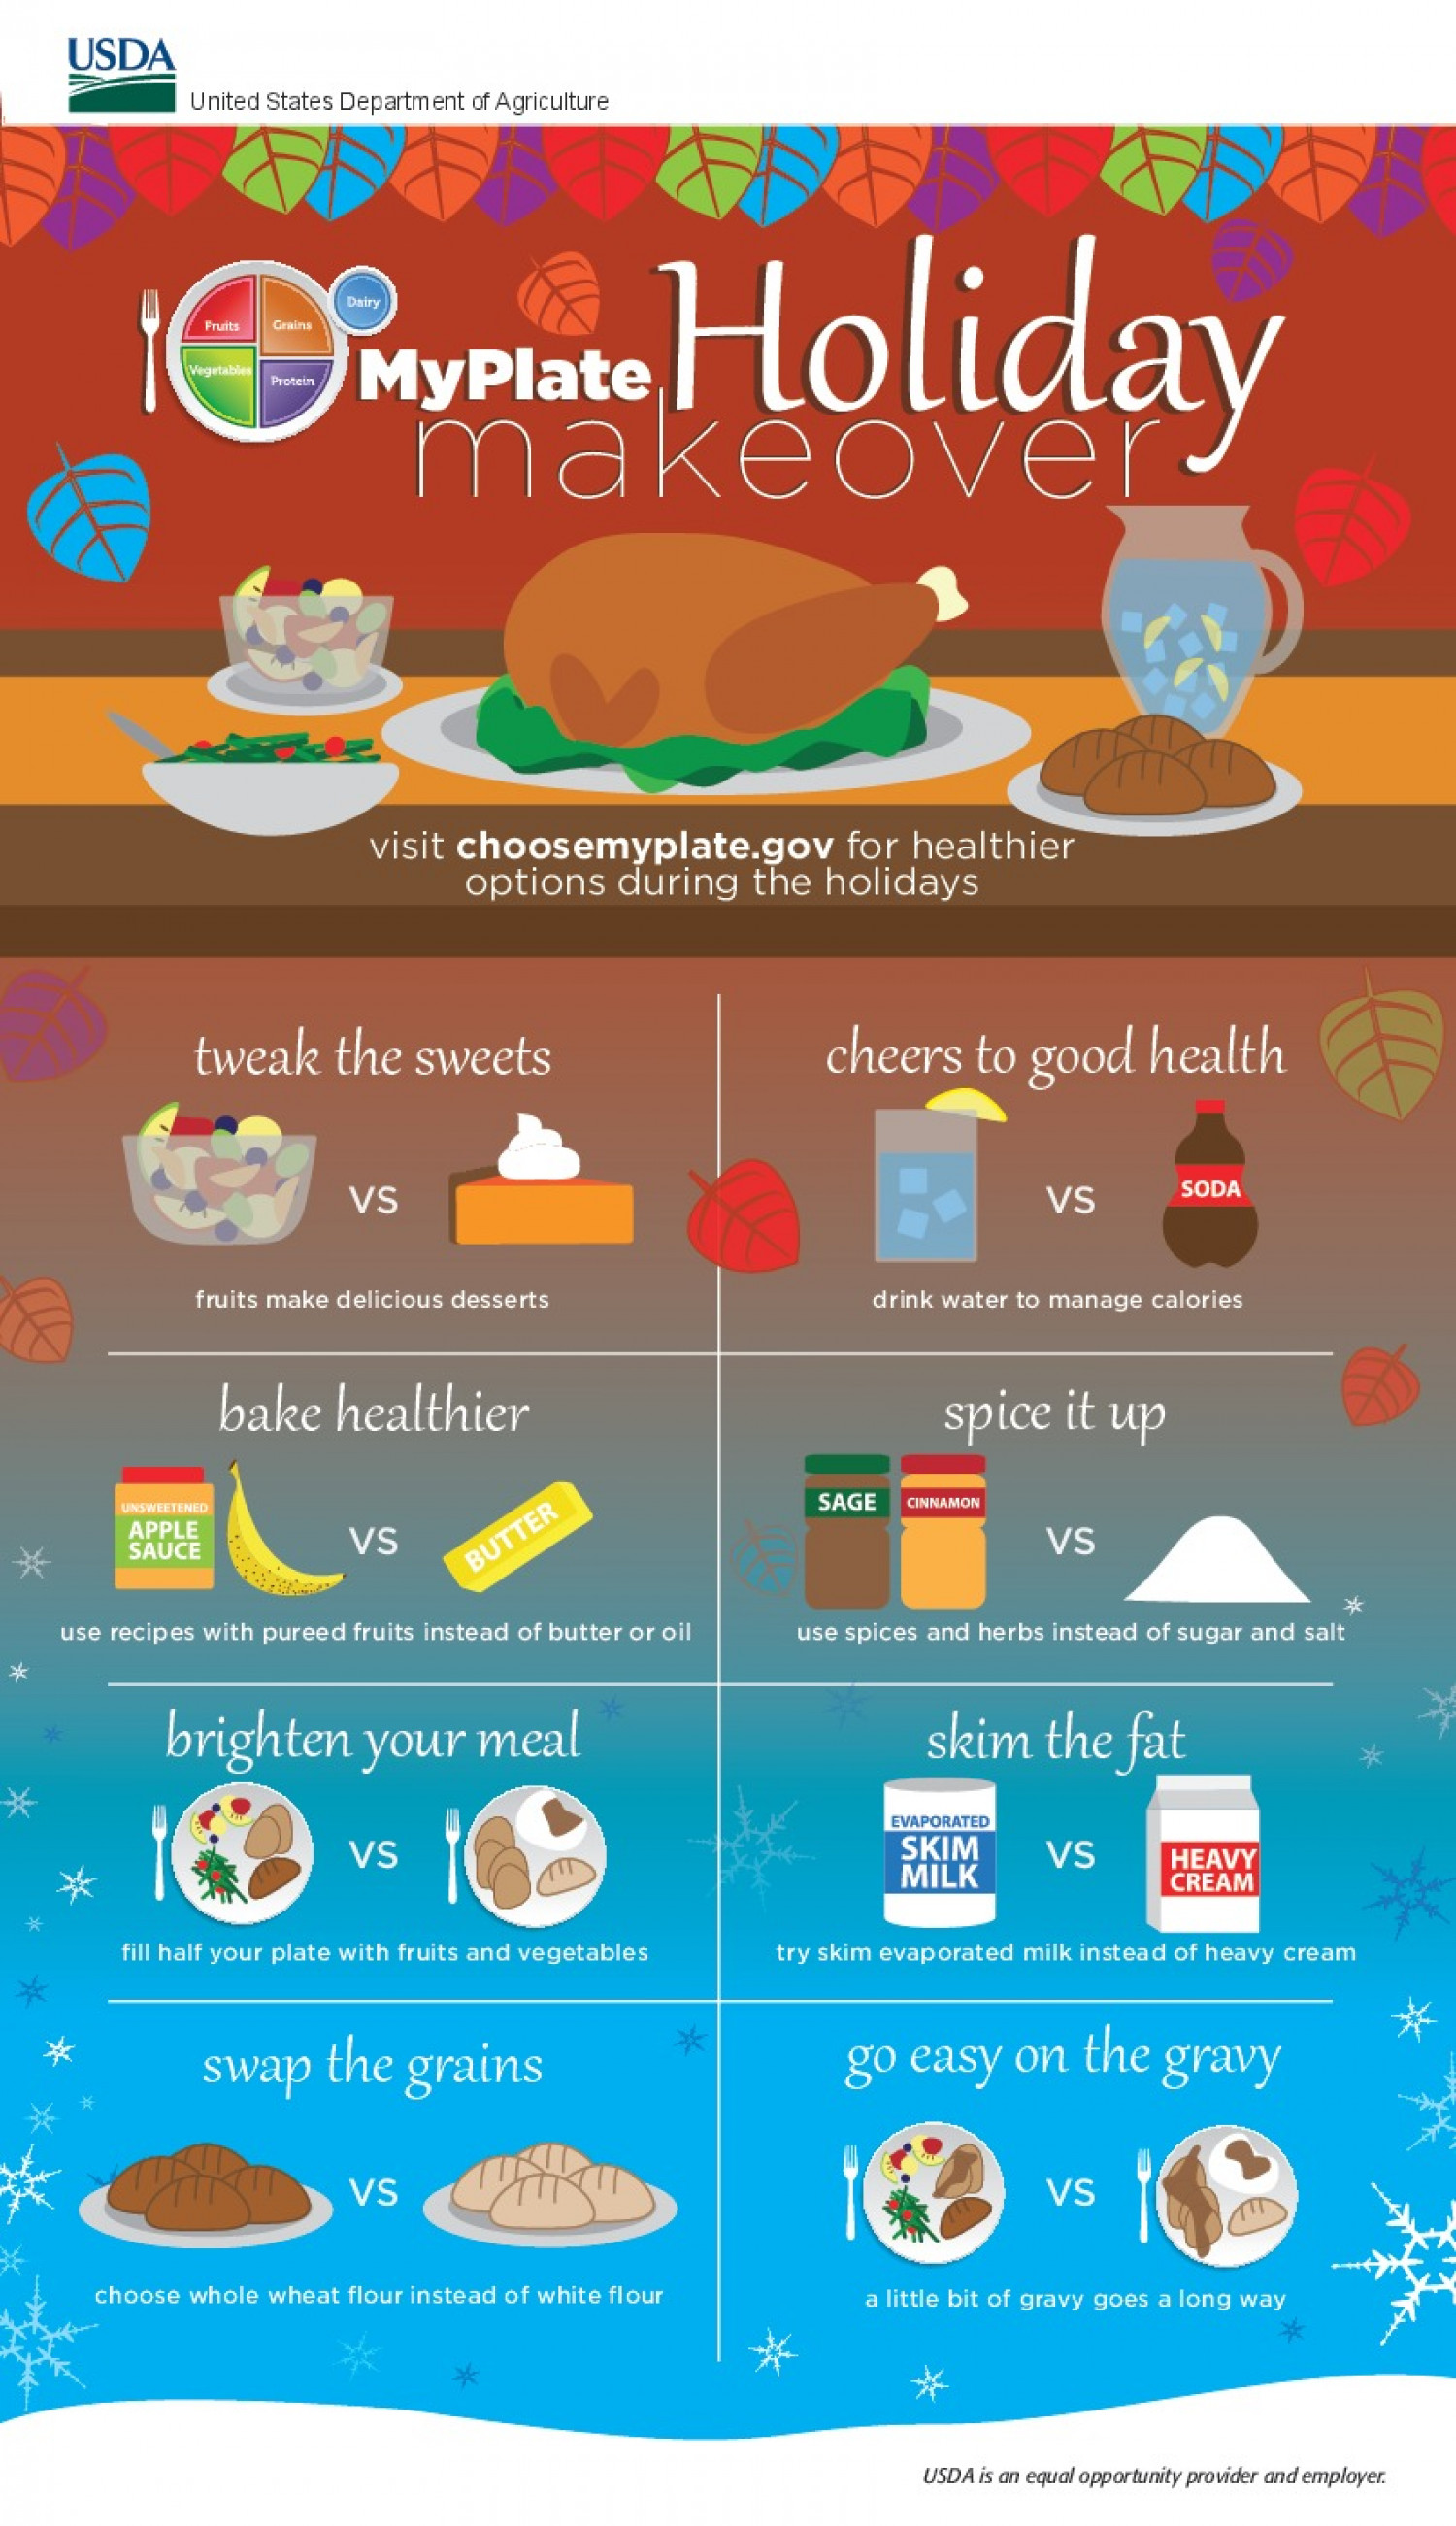 Myplate Holiday Makeover